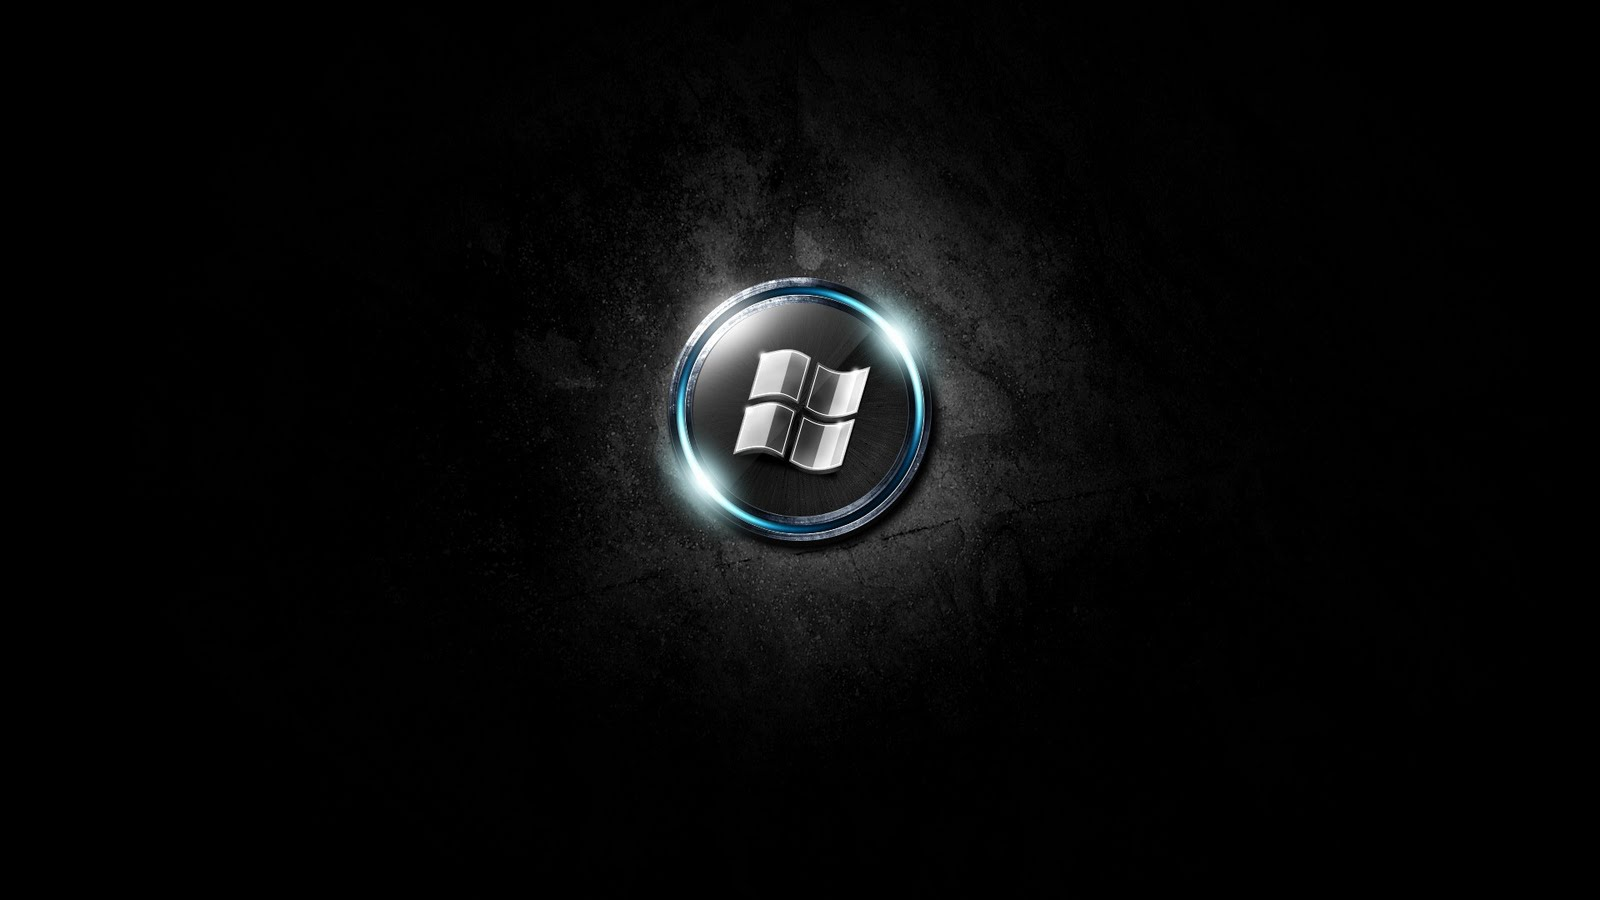 Cool windows 7 logo full hd wallpaper is a great wallpaper for your